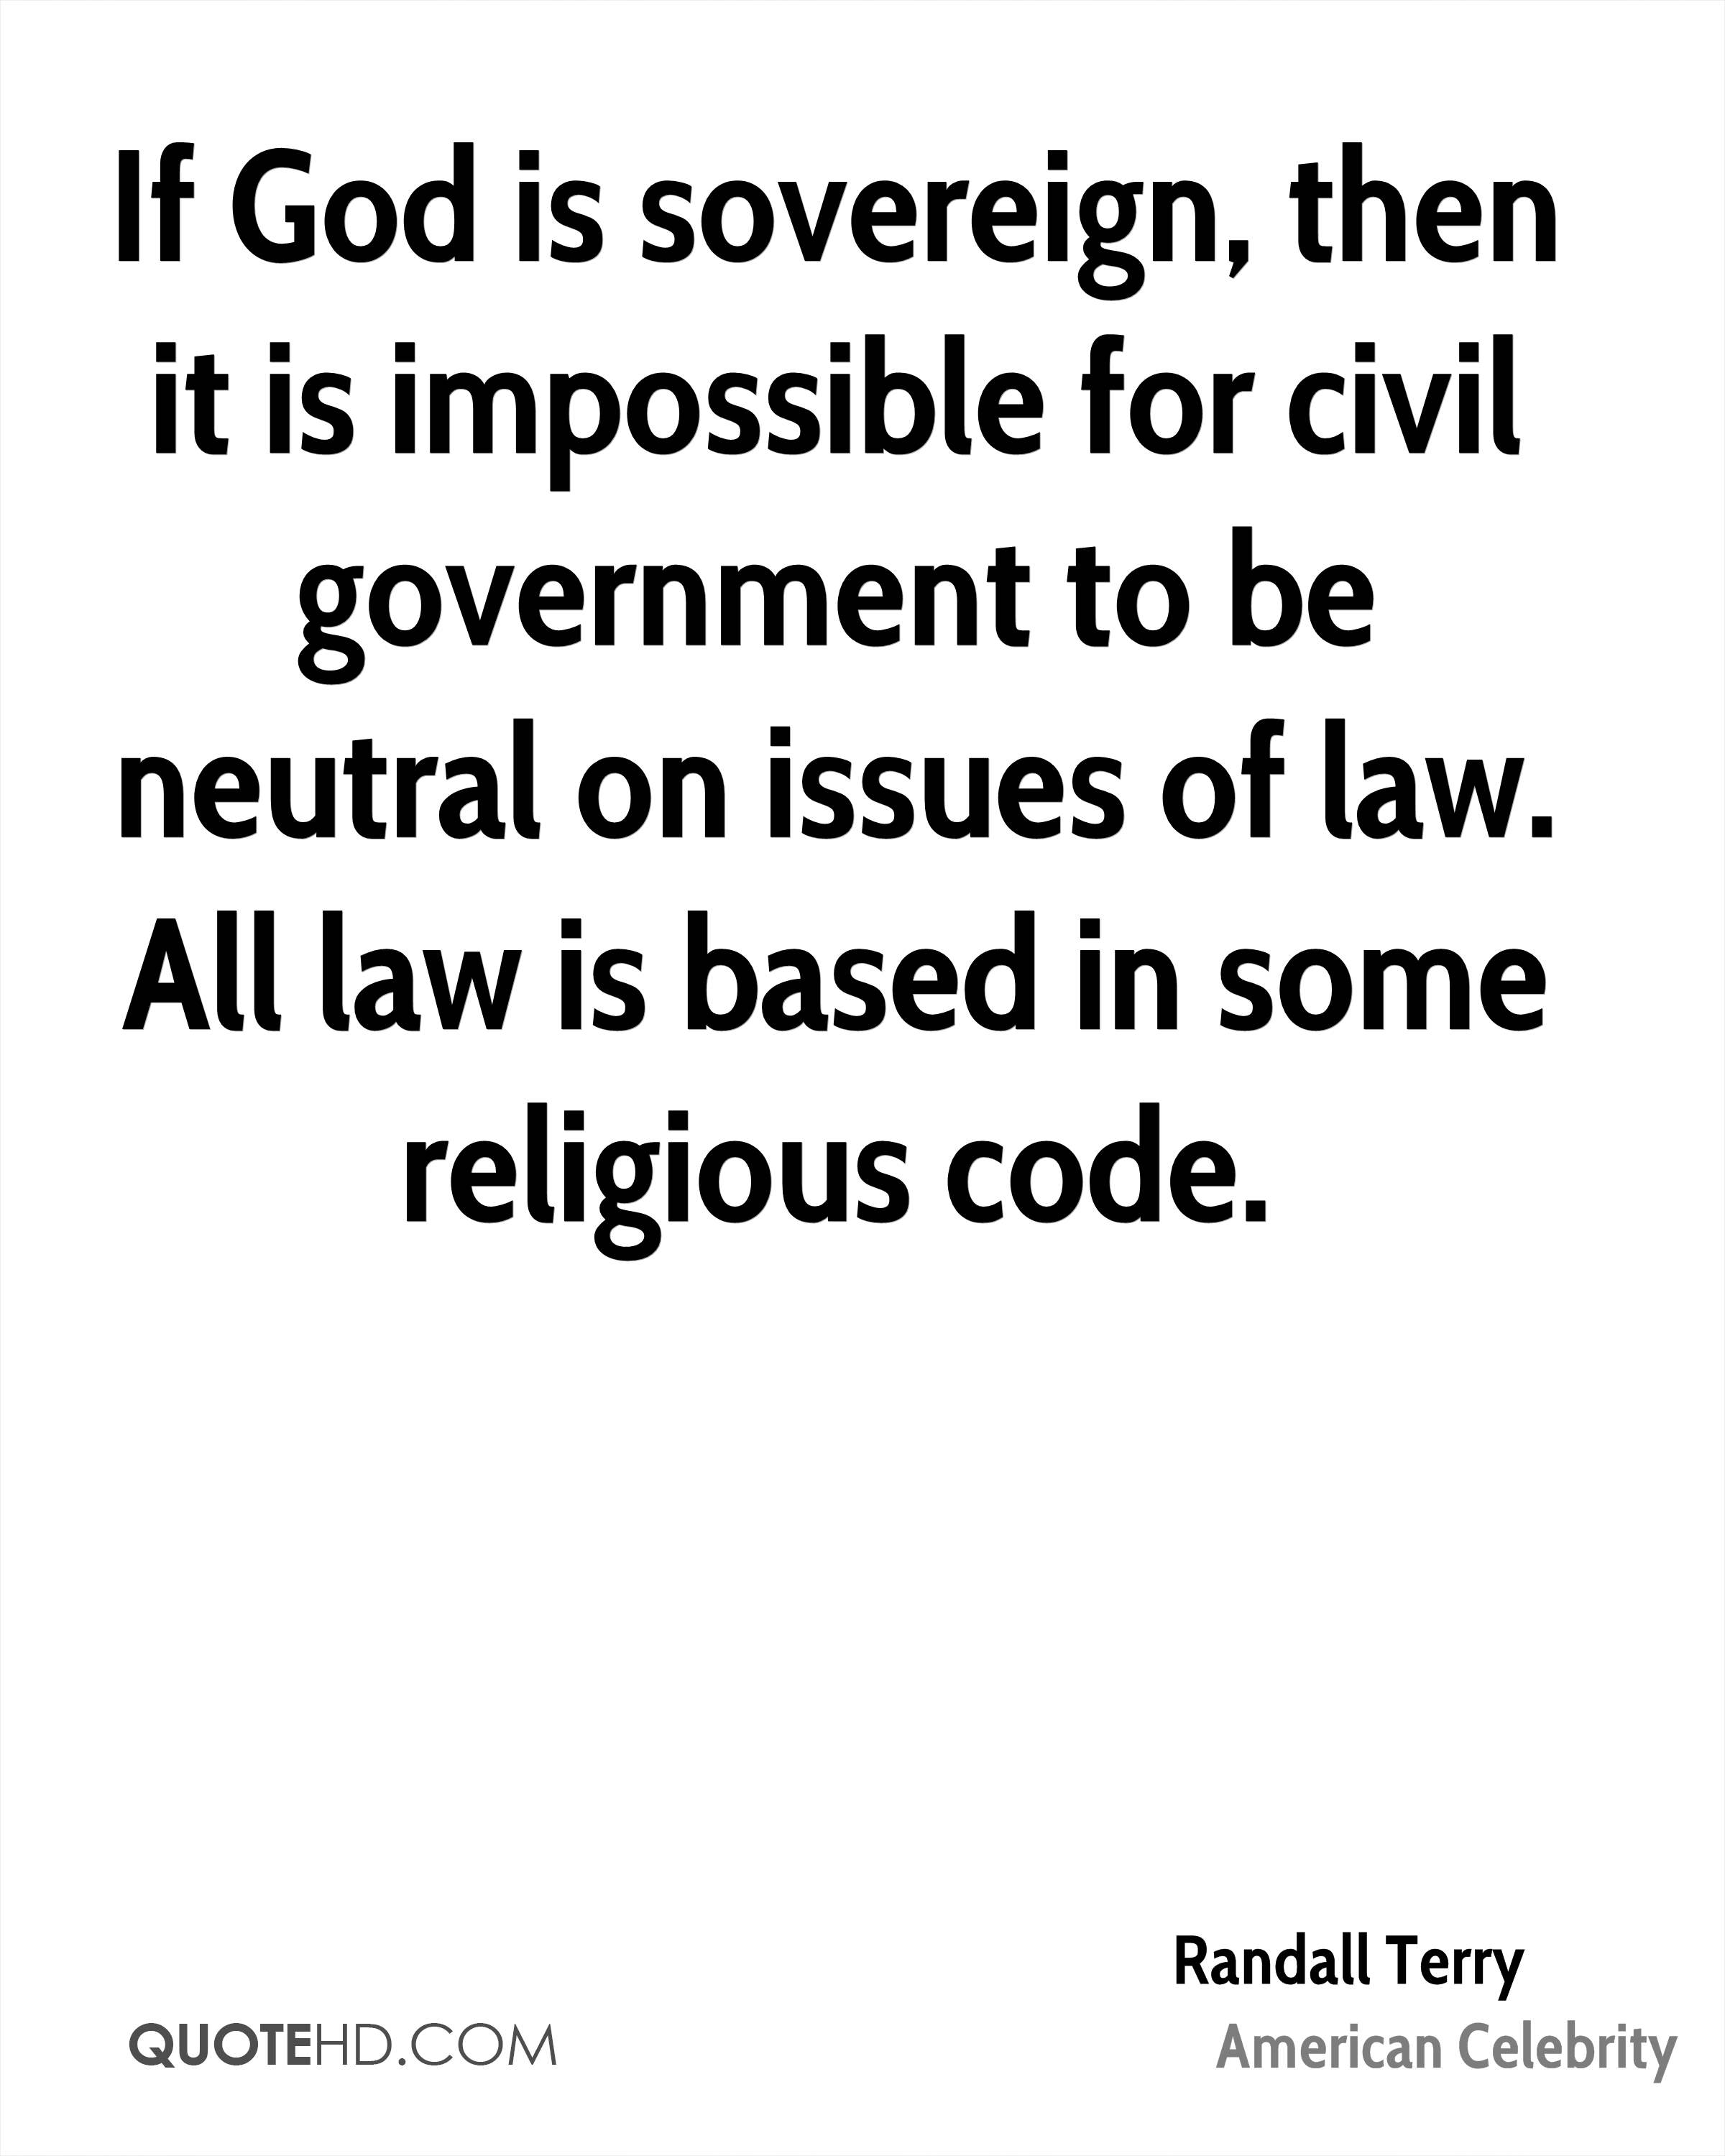 If God is sovereign, then it is impossible for civil government to be neutral on issues of law. All law is based in some religious code.